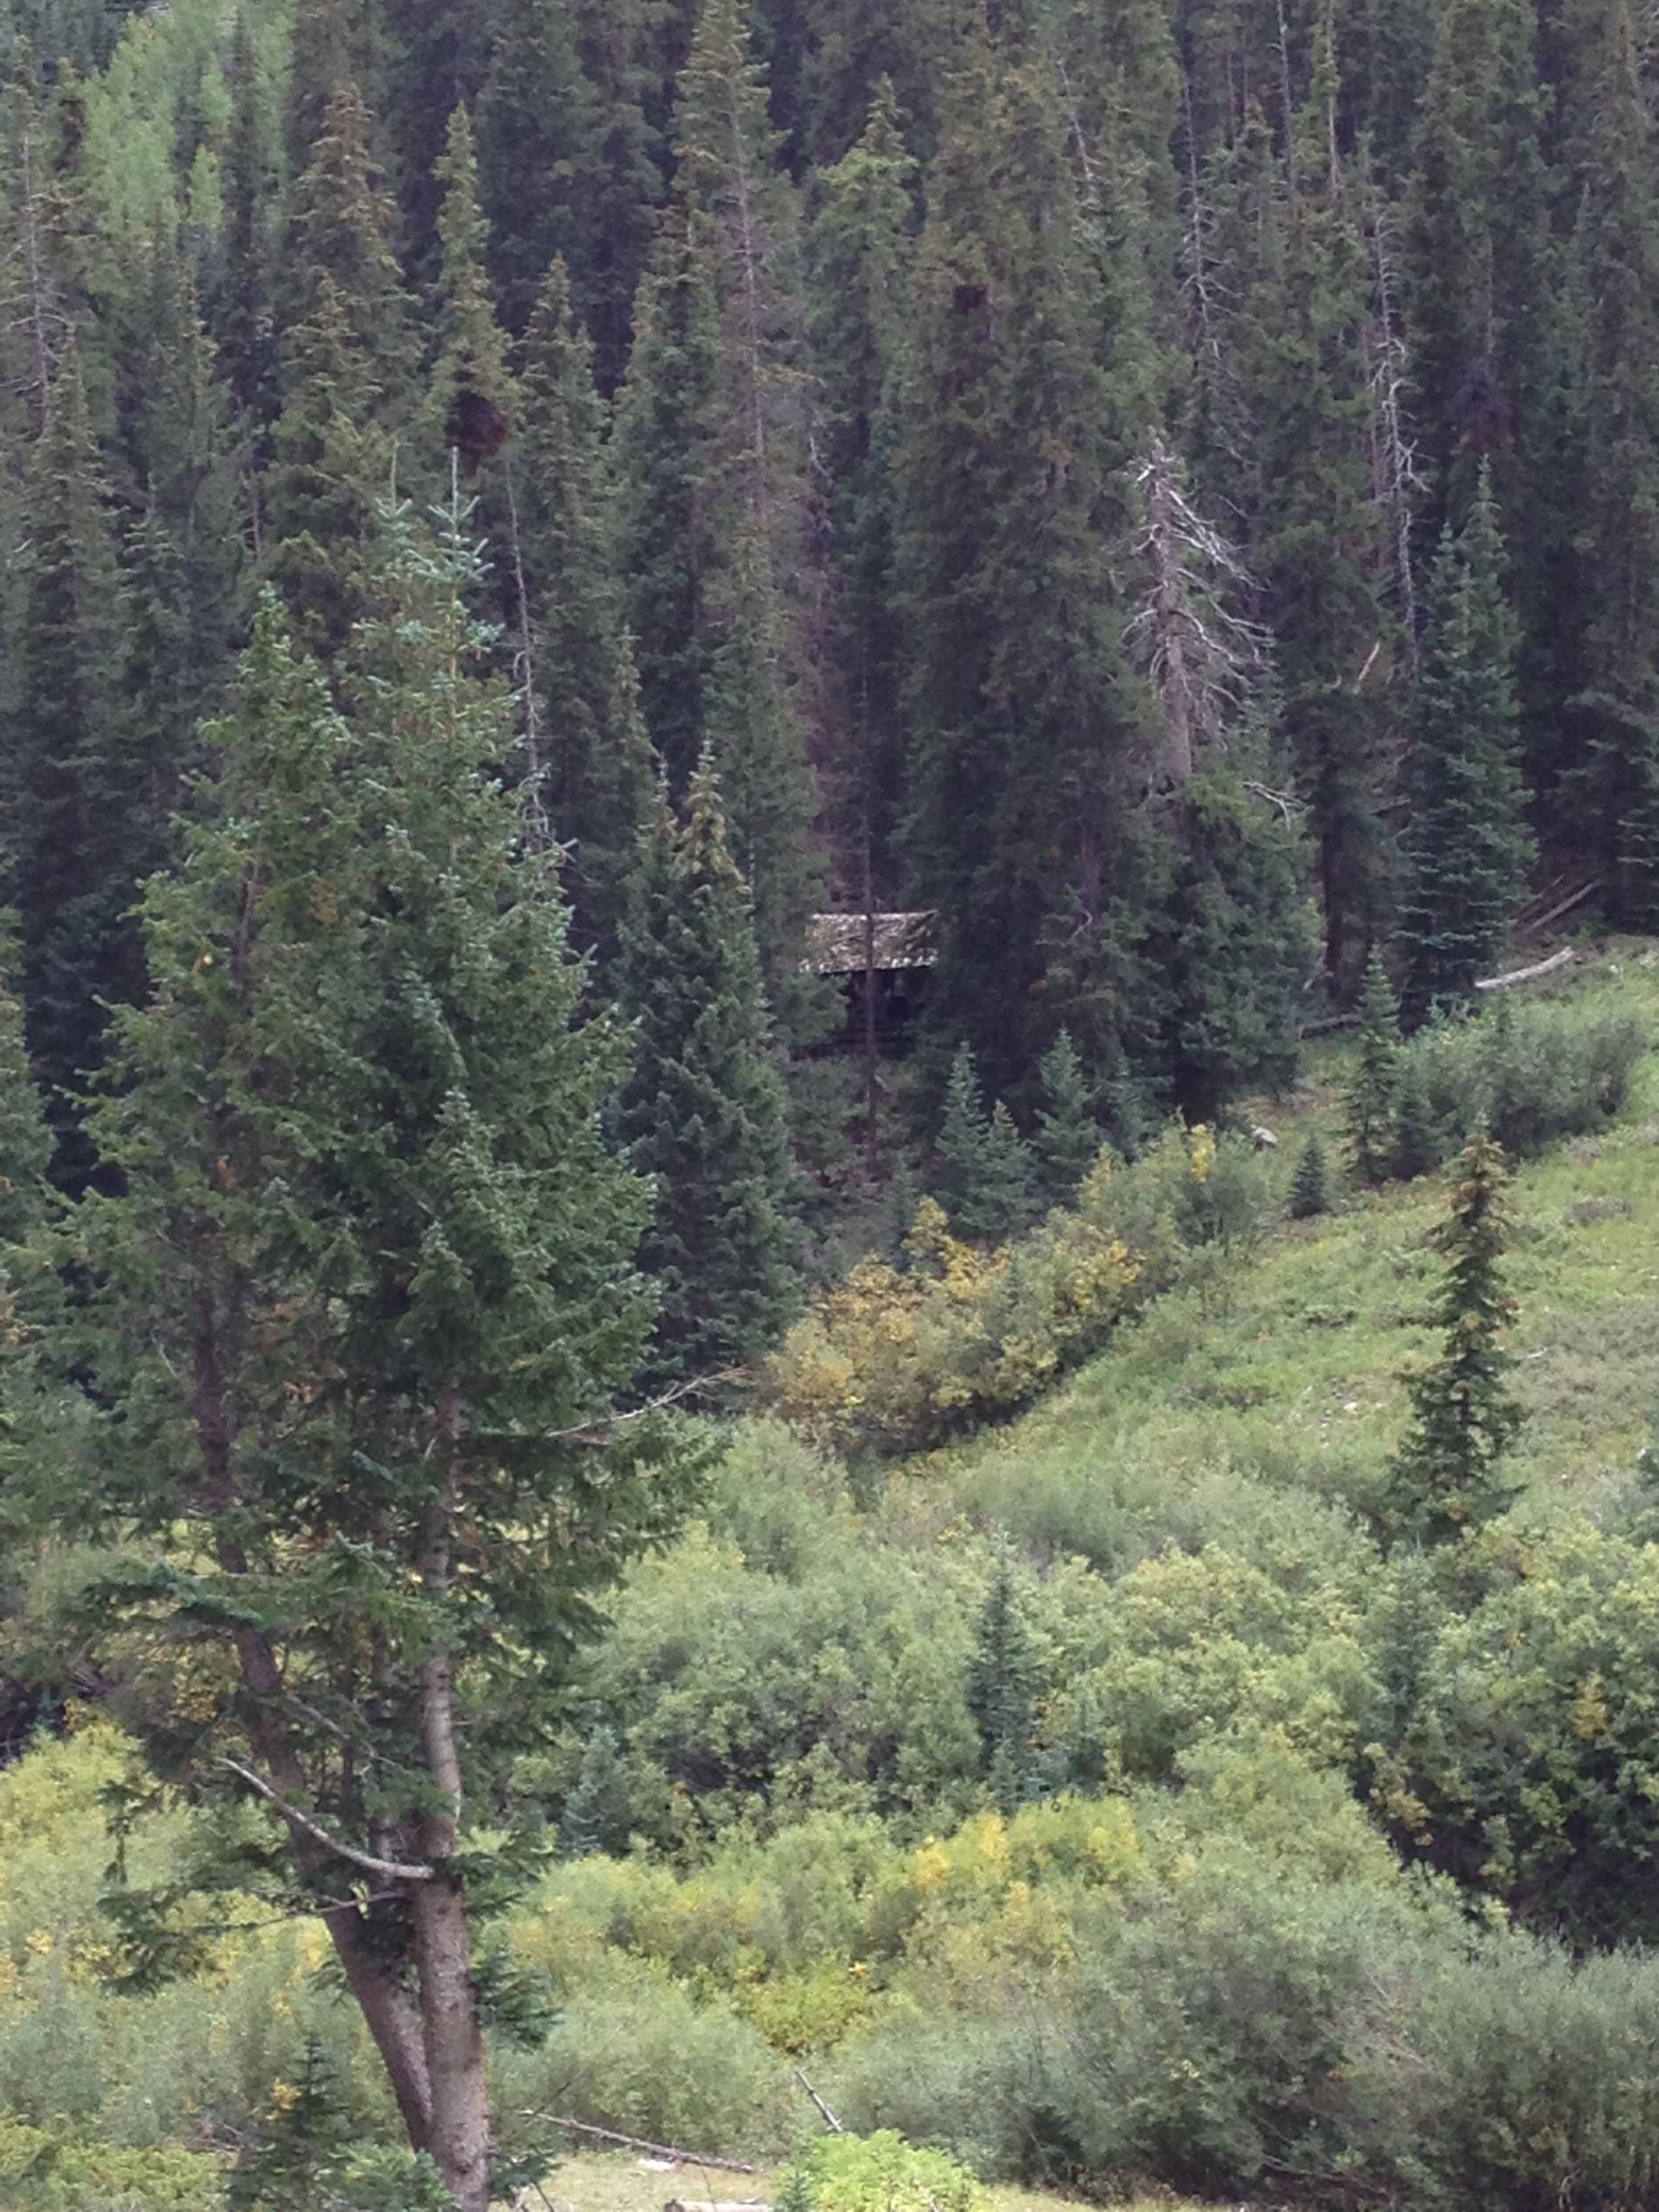 Someone's mining home in the late 1800's. still standing in the tree covered mountainside, Alpine Loop, Colorado.